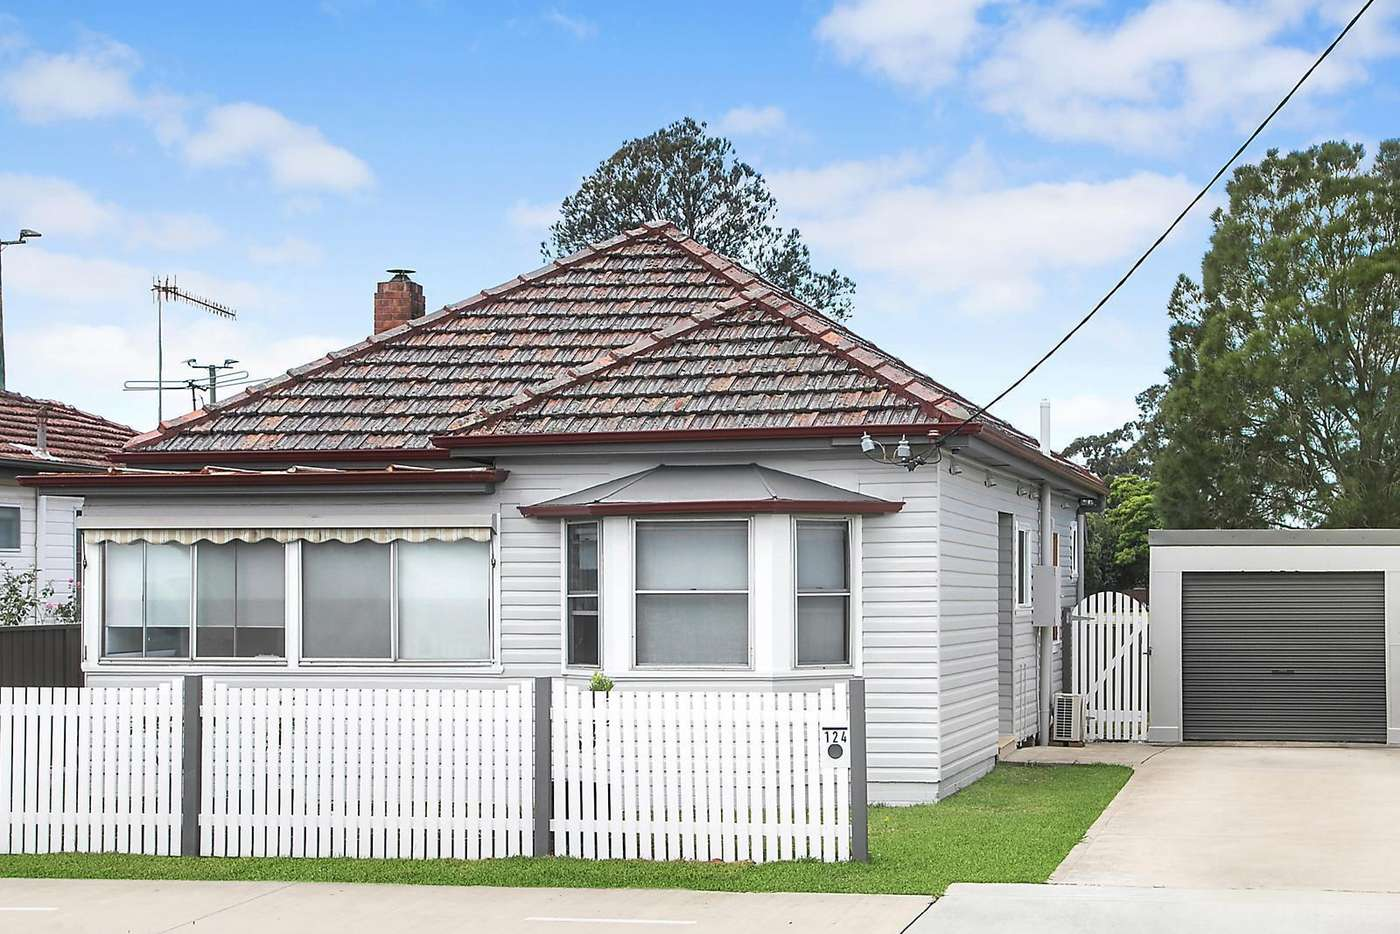 Main view of Homely house listing, 124 Bridges Road, New Lambton NSW 2305